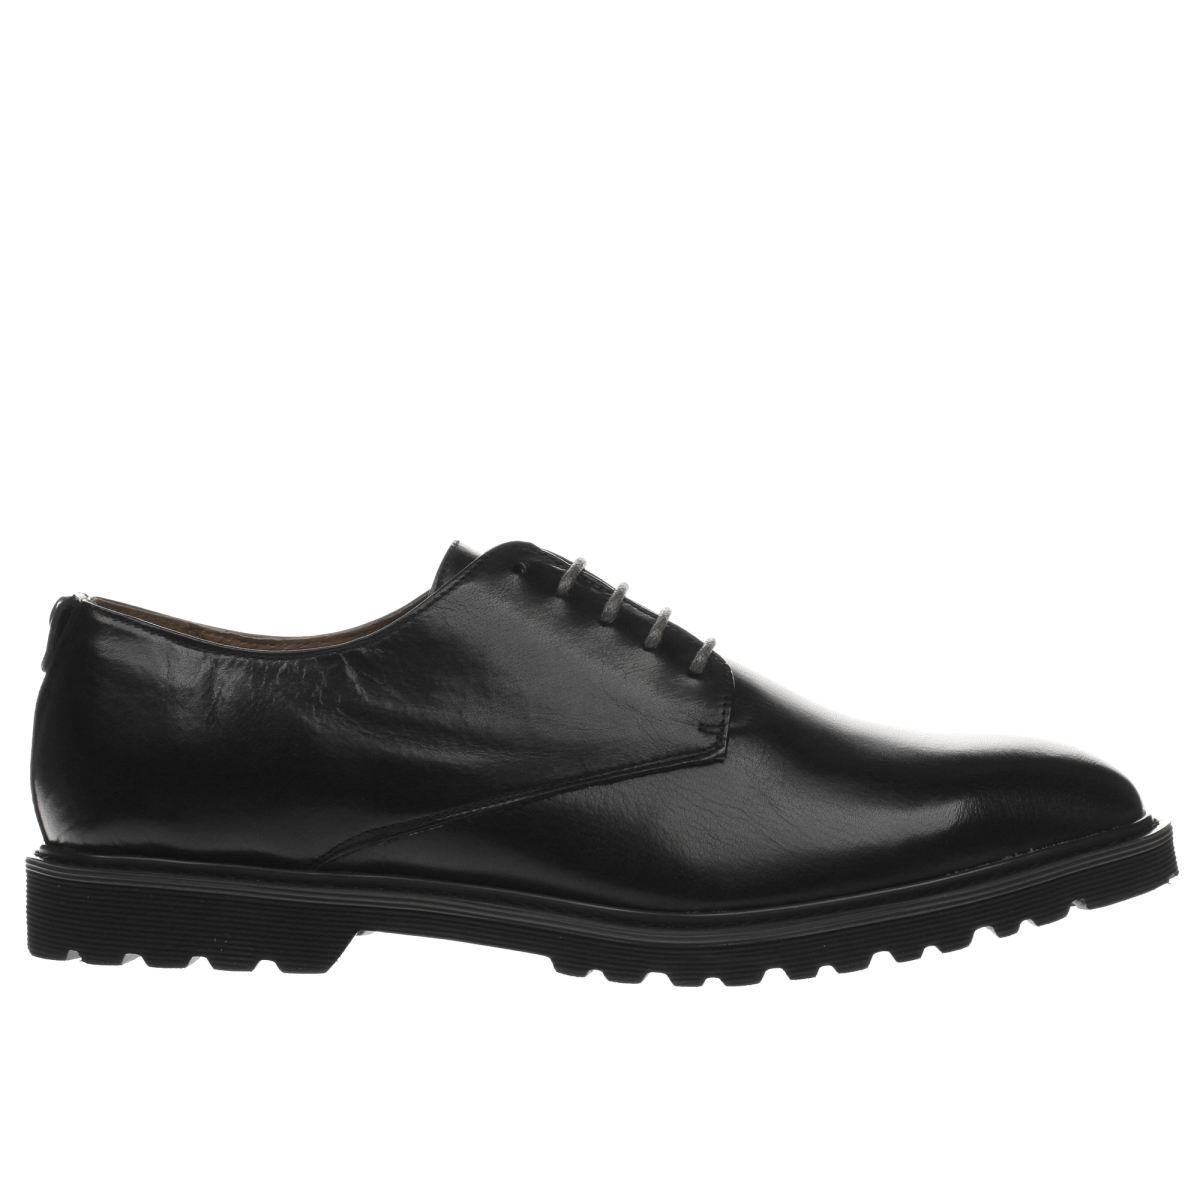 Peter Werth Peter Werth Black Laurie Derby Shoes